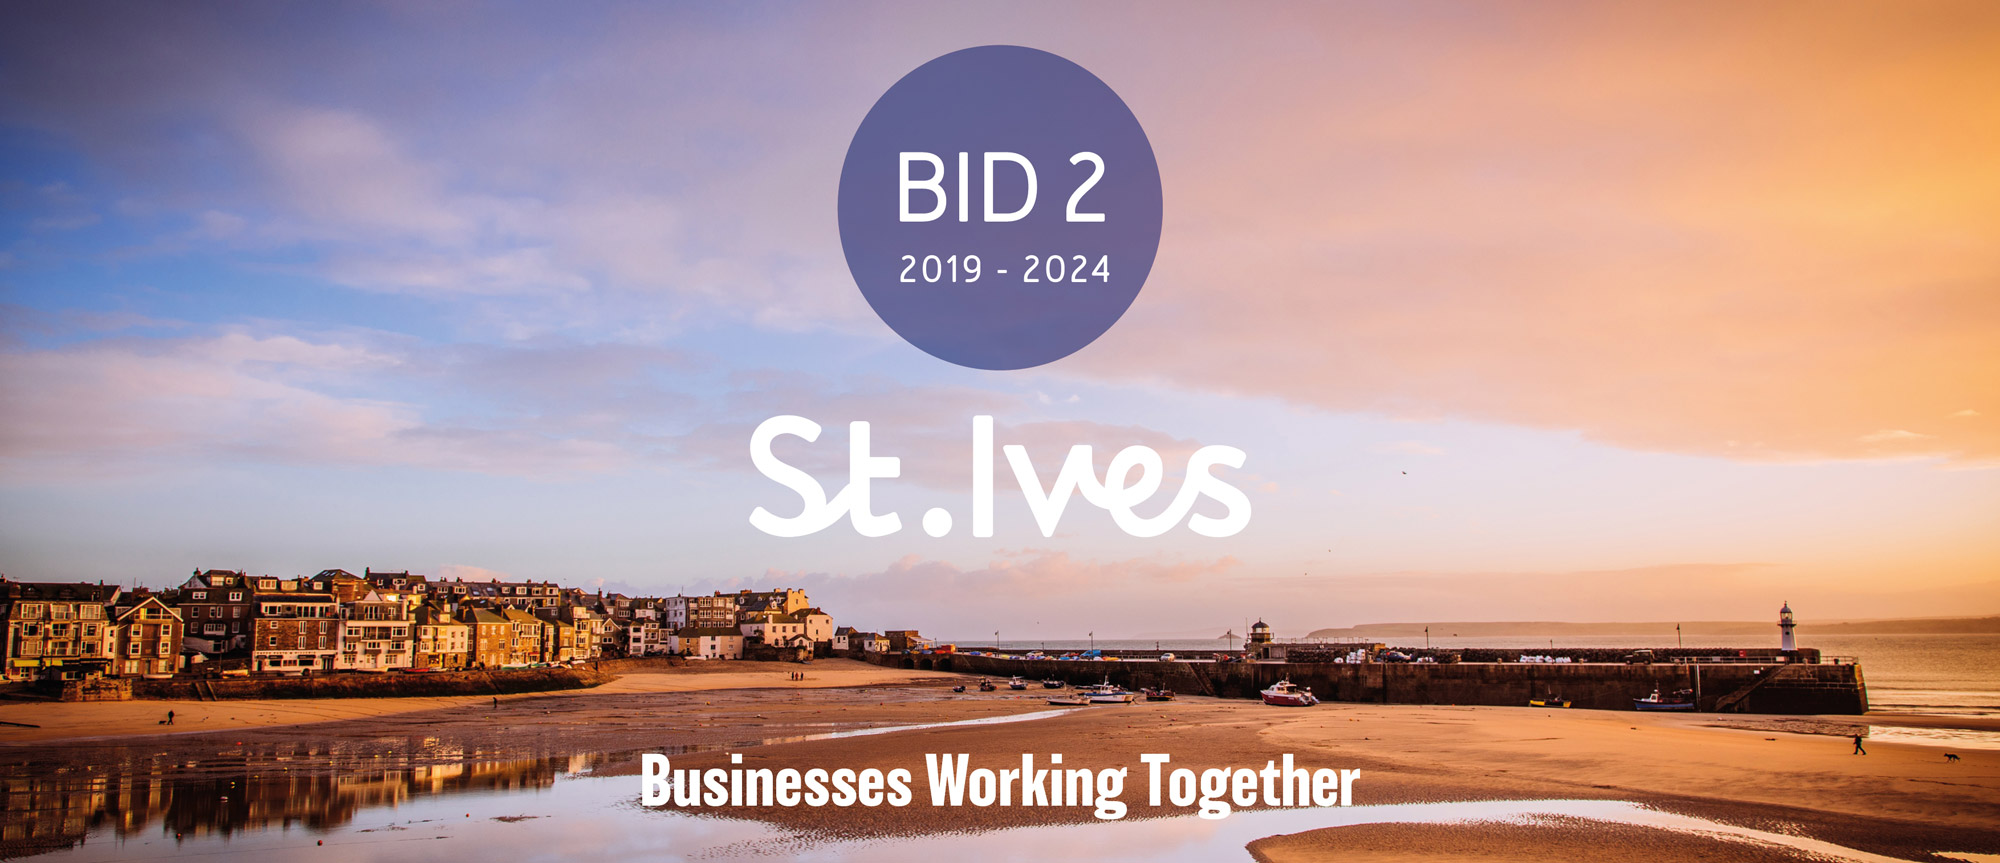 St Ives BID 2 - Renewal Business Plan